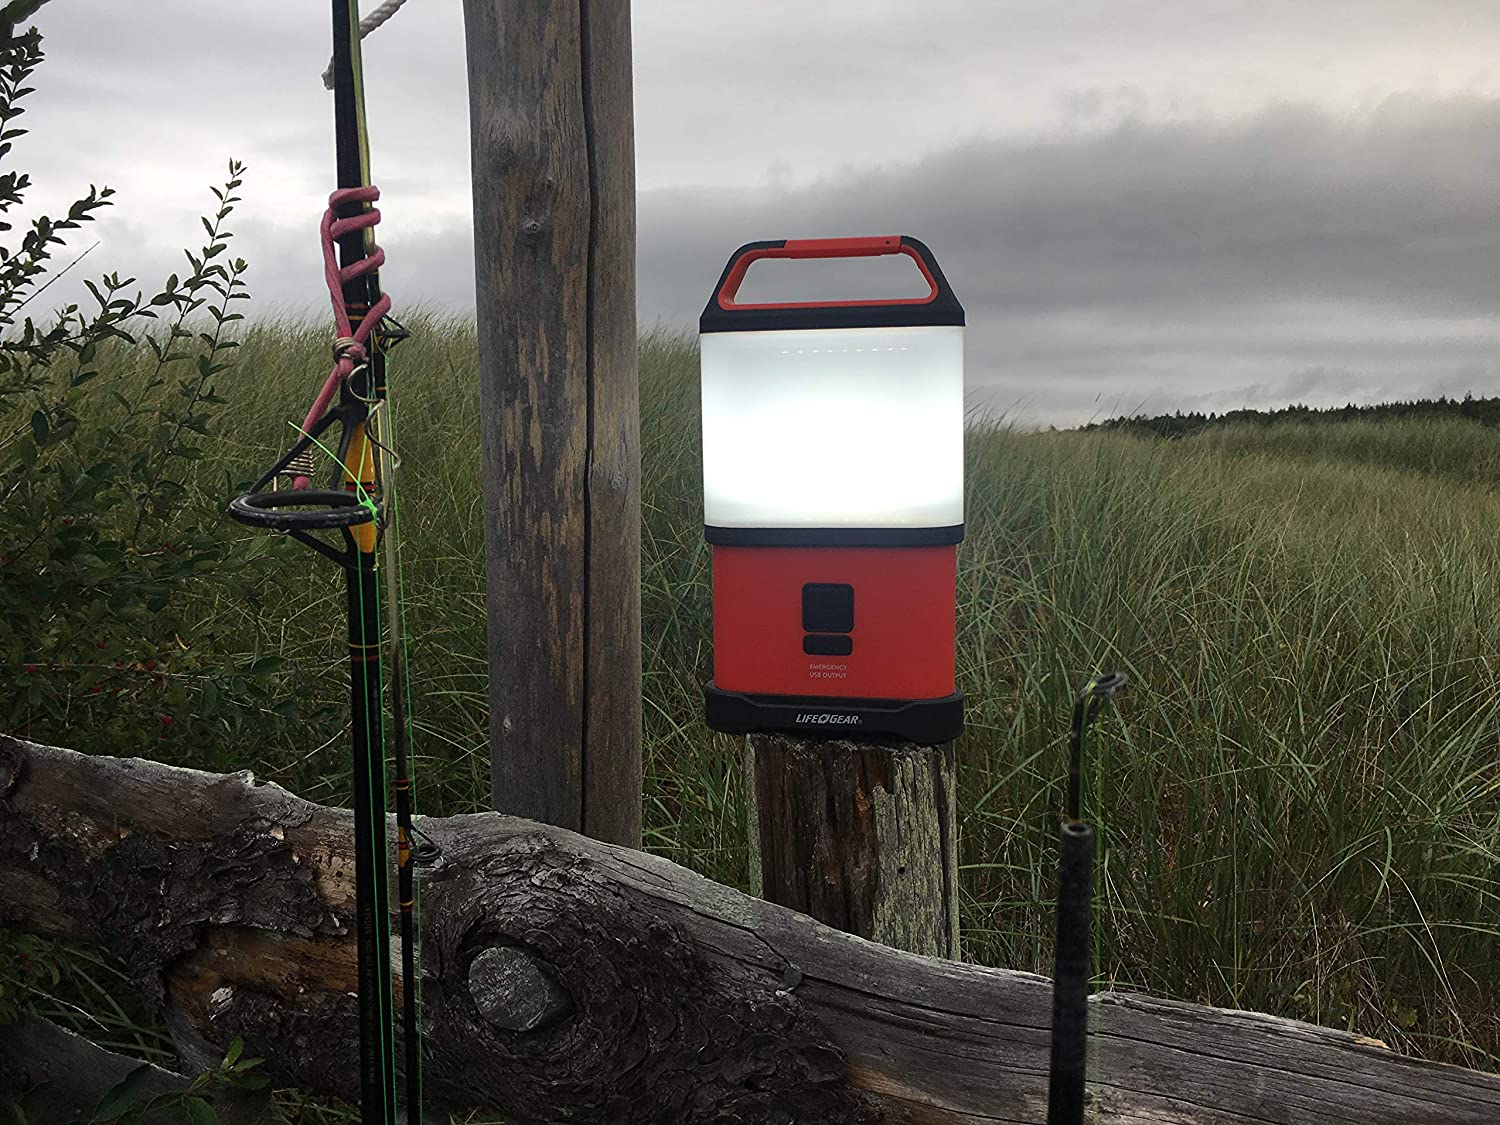 41-3760 Red Collapsible Lantern with Bright 500 Lumens Life Gear Stormproof Stow Away